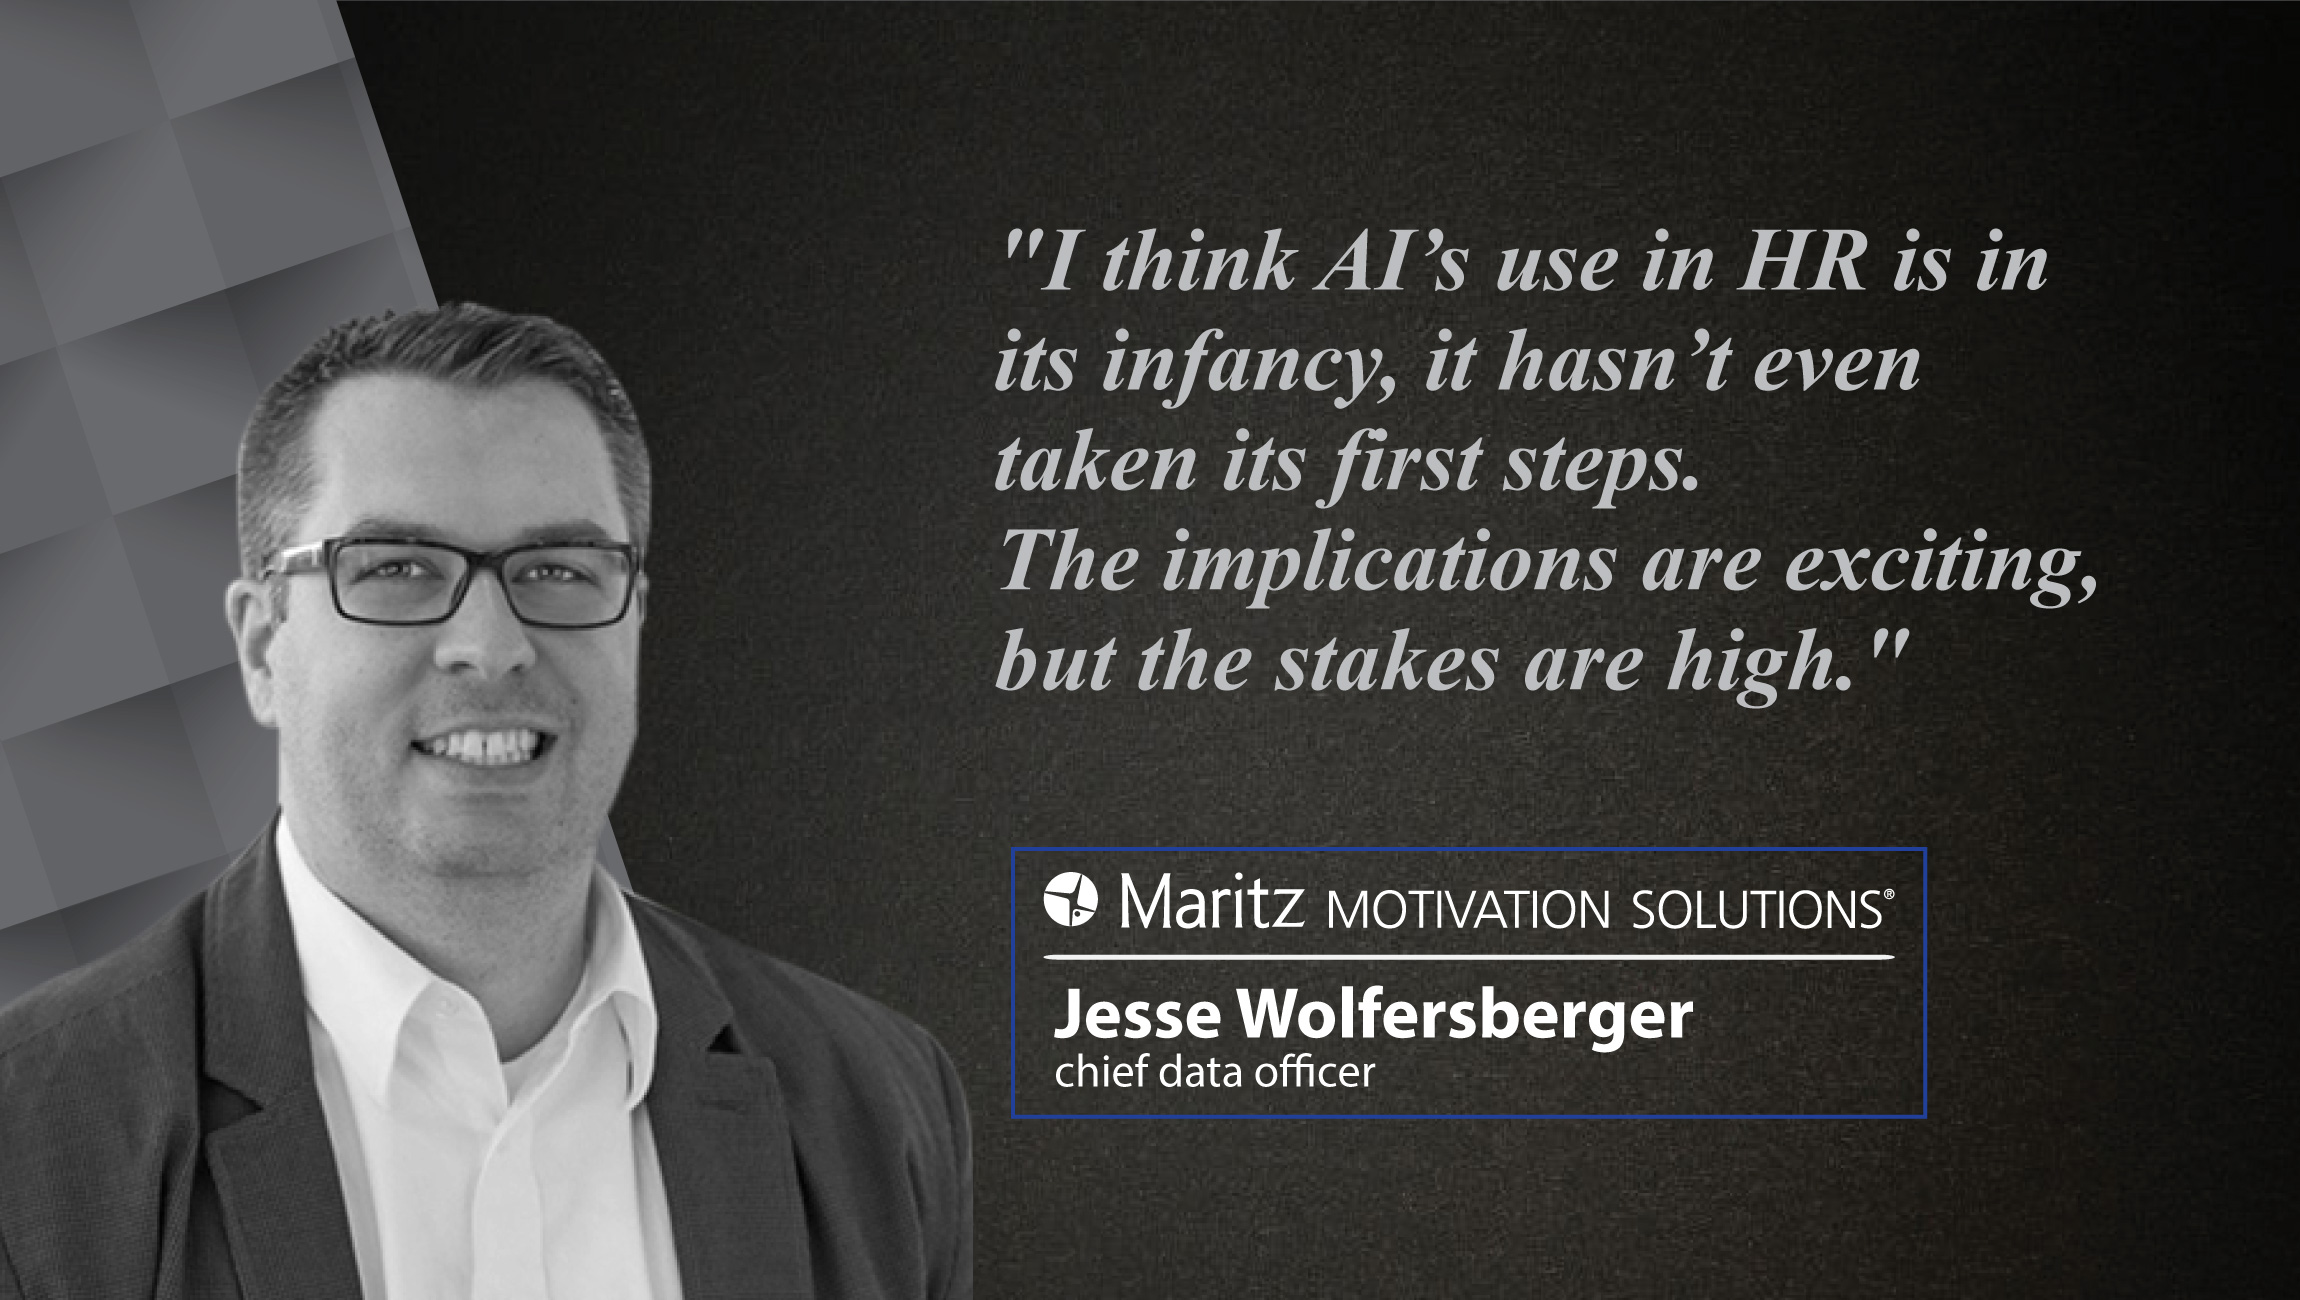 Interview with Jesse Wolfersberger, Chief Data Officer at Maritz Motivation Solutions_CUE-CARD